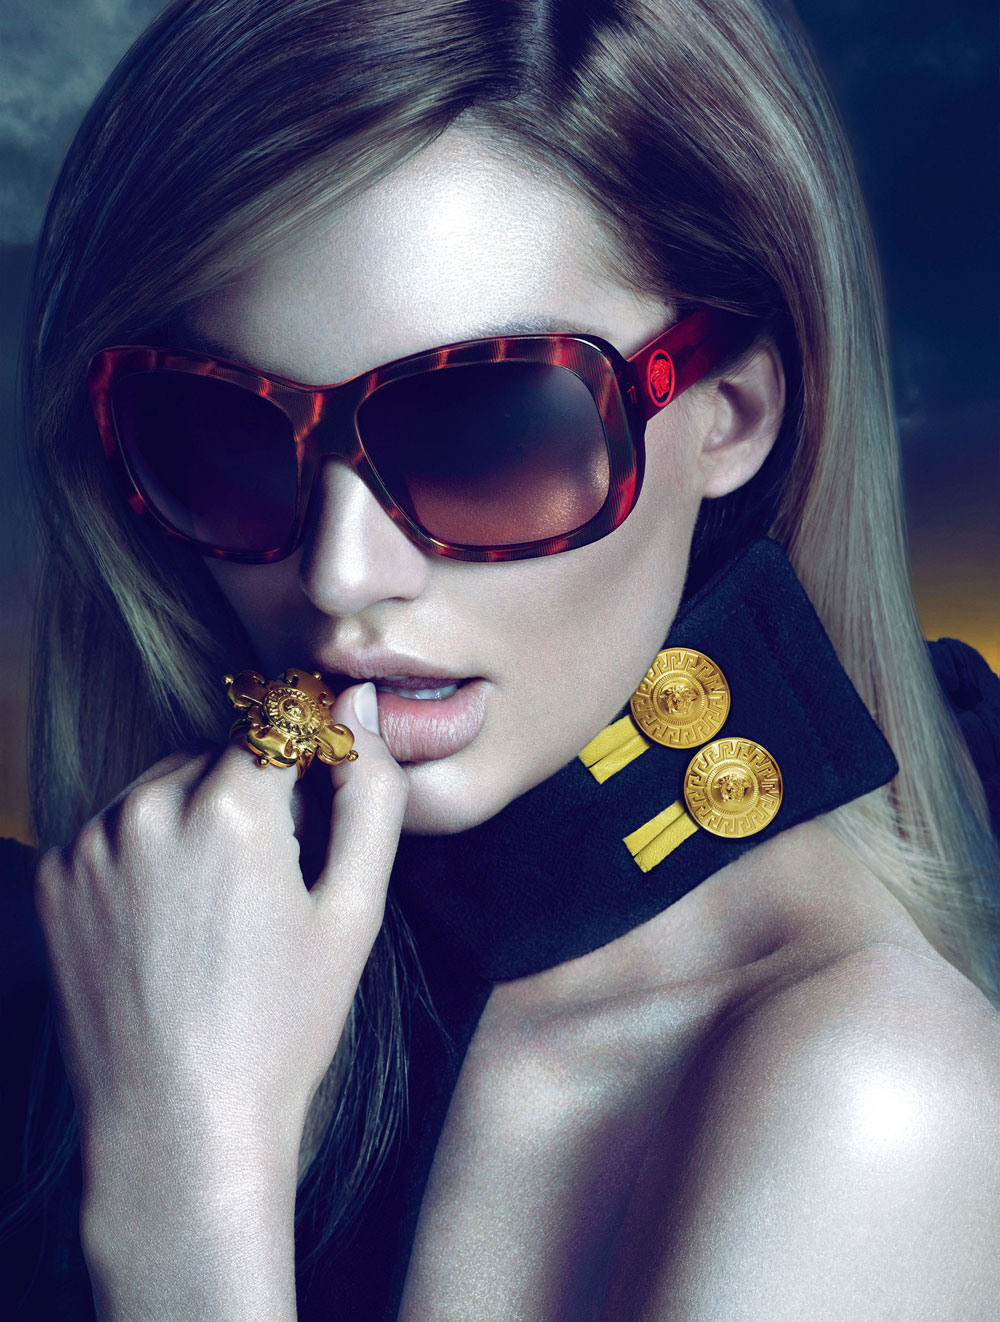 Versace Latest Clothing Men Women Trends for Bags & Glasses (6)